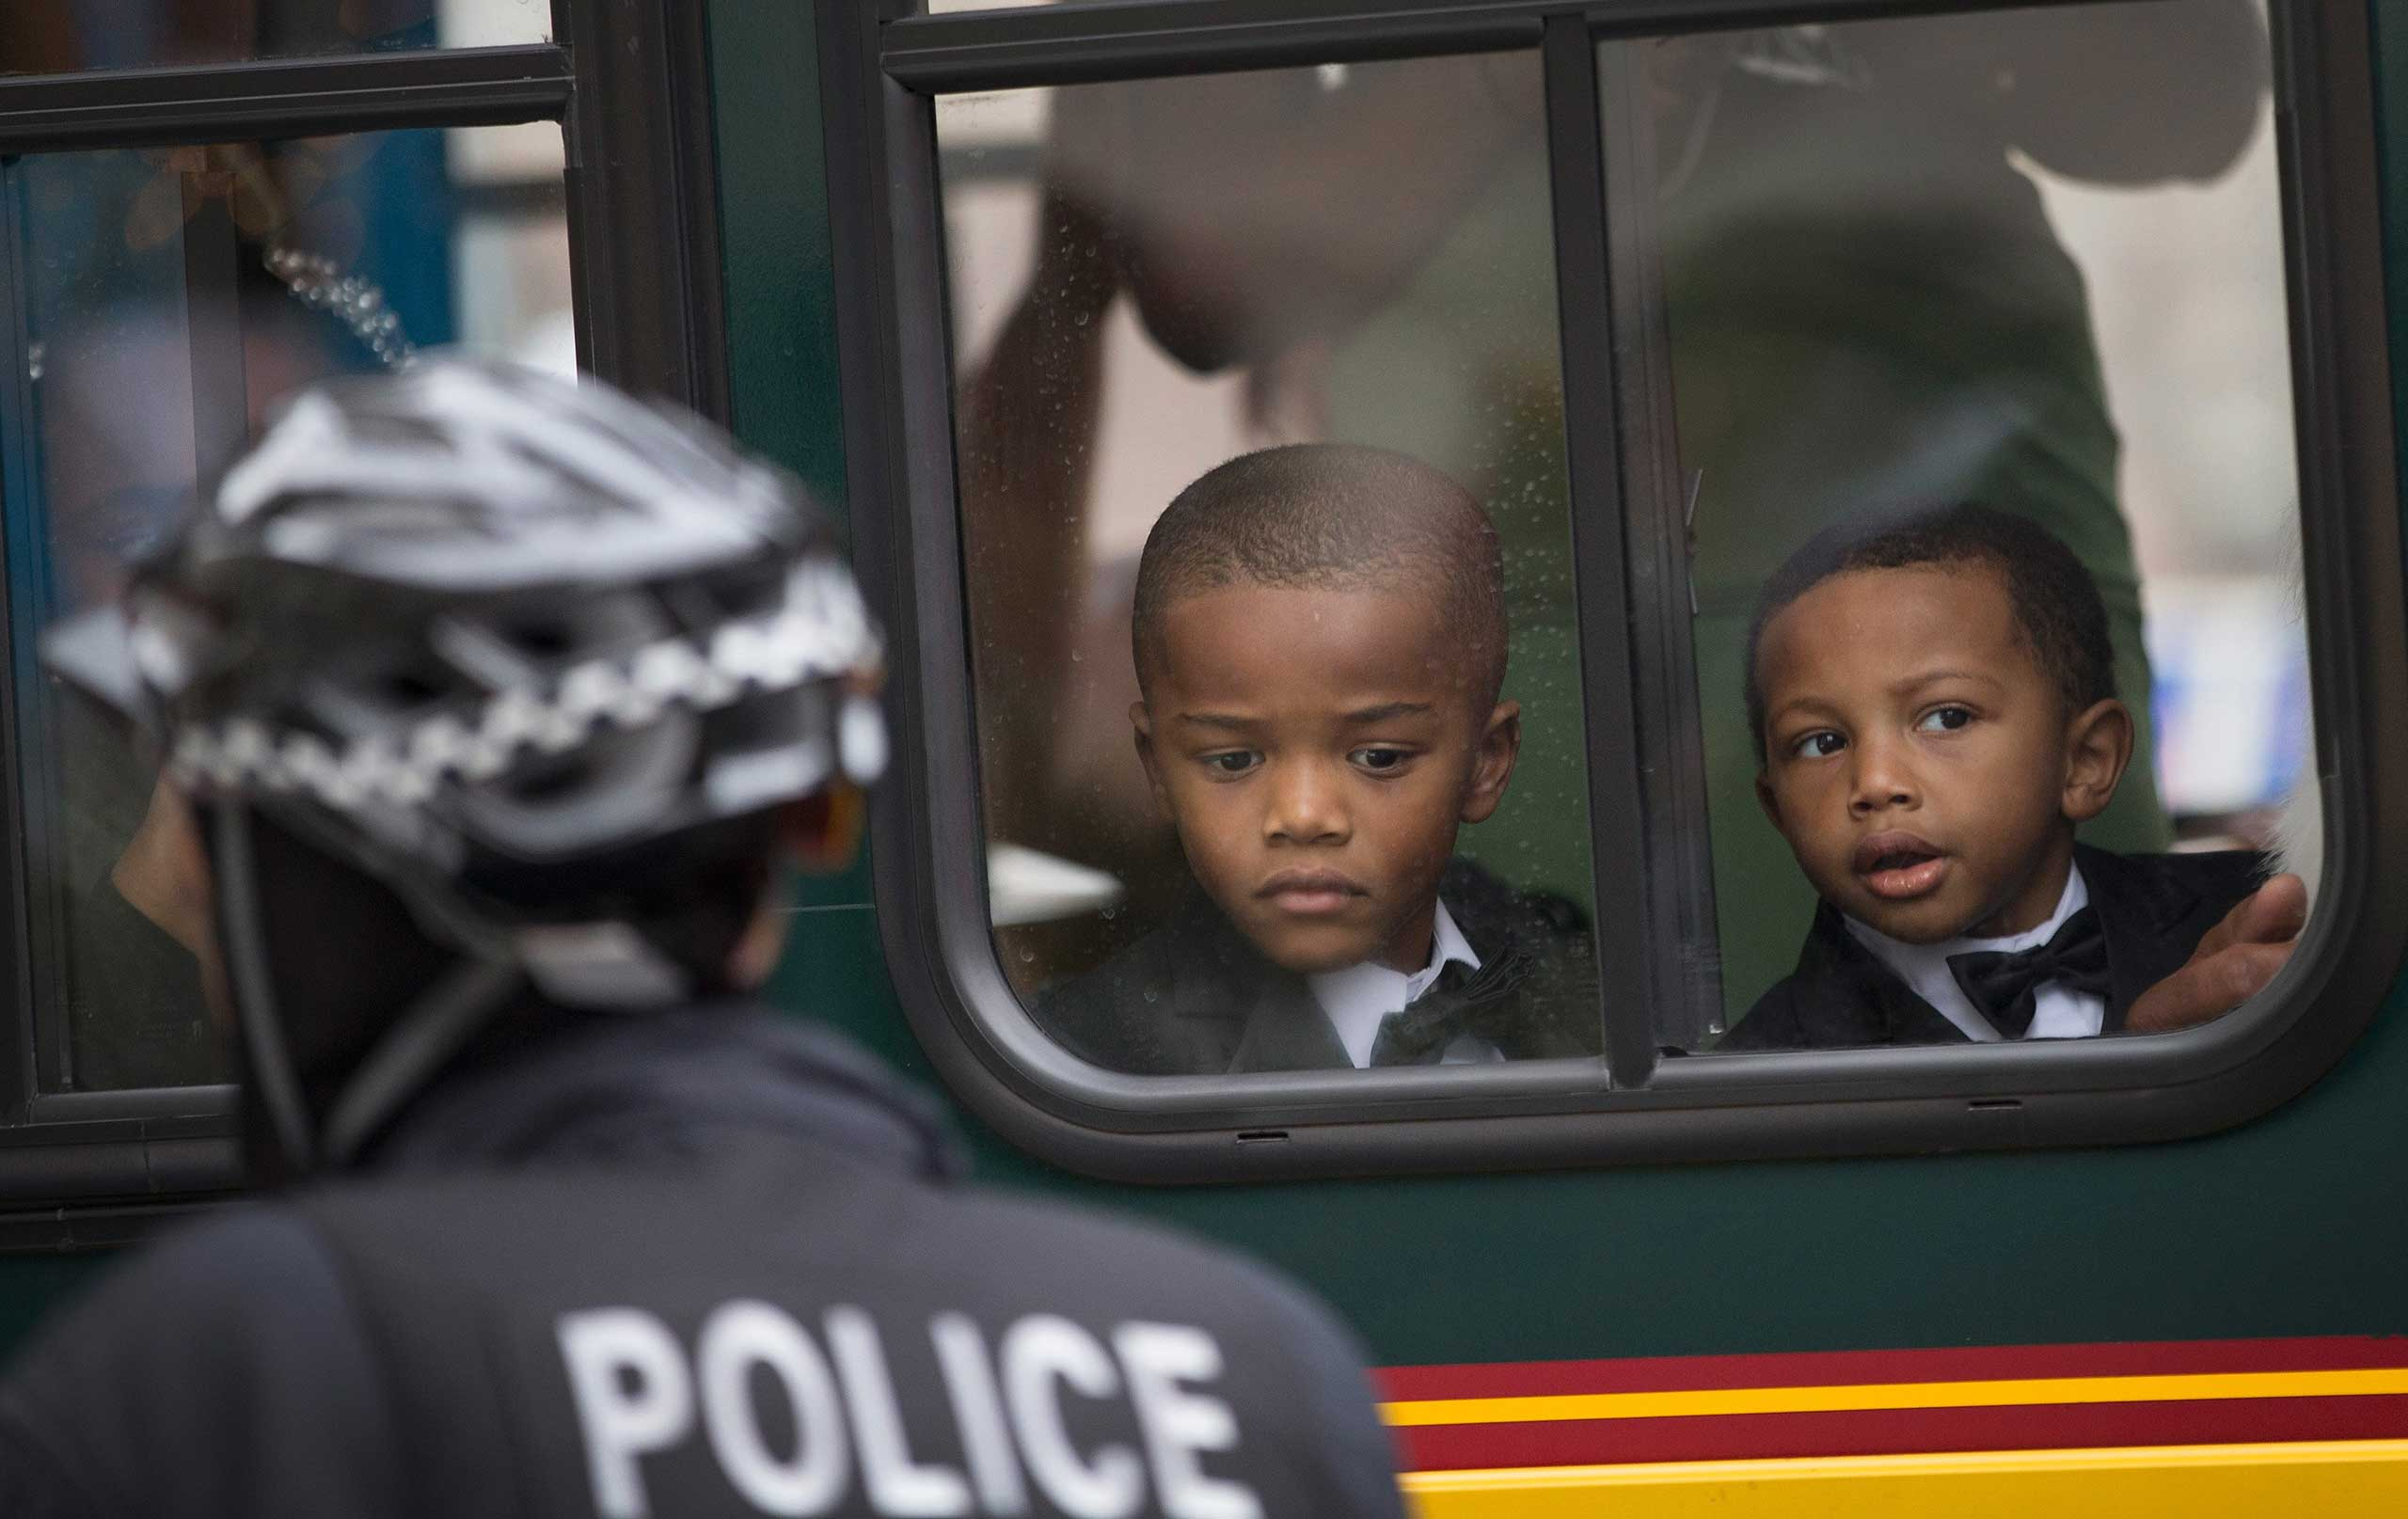 Young boys watch from a seat in a charter bus as demonstrators march along Michigan Avenue to protest police brutality on Dec. 13, 2014 in Chicago.